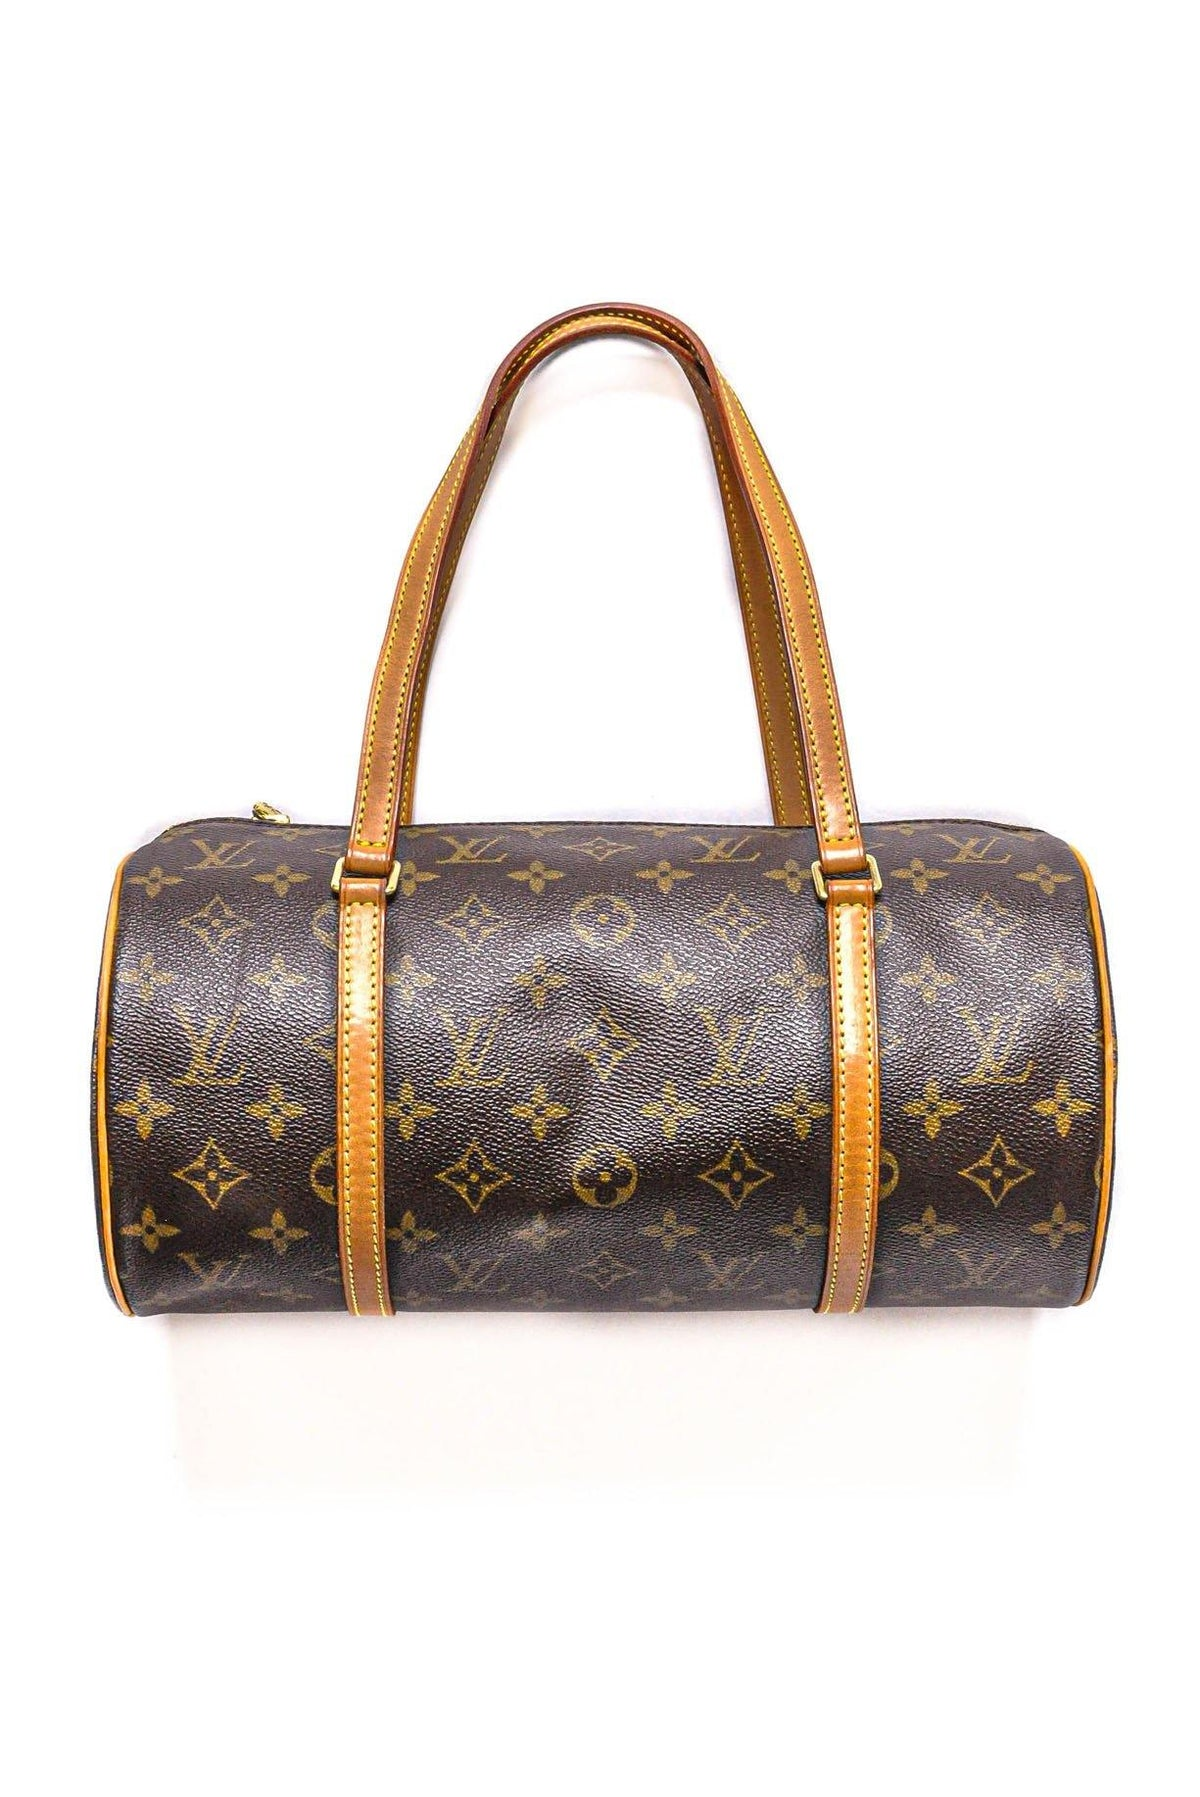 Vintage Louis Vuitton Papillon 30 Handbag from Sweet and Spark